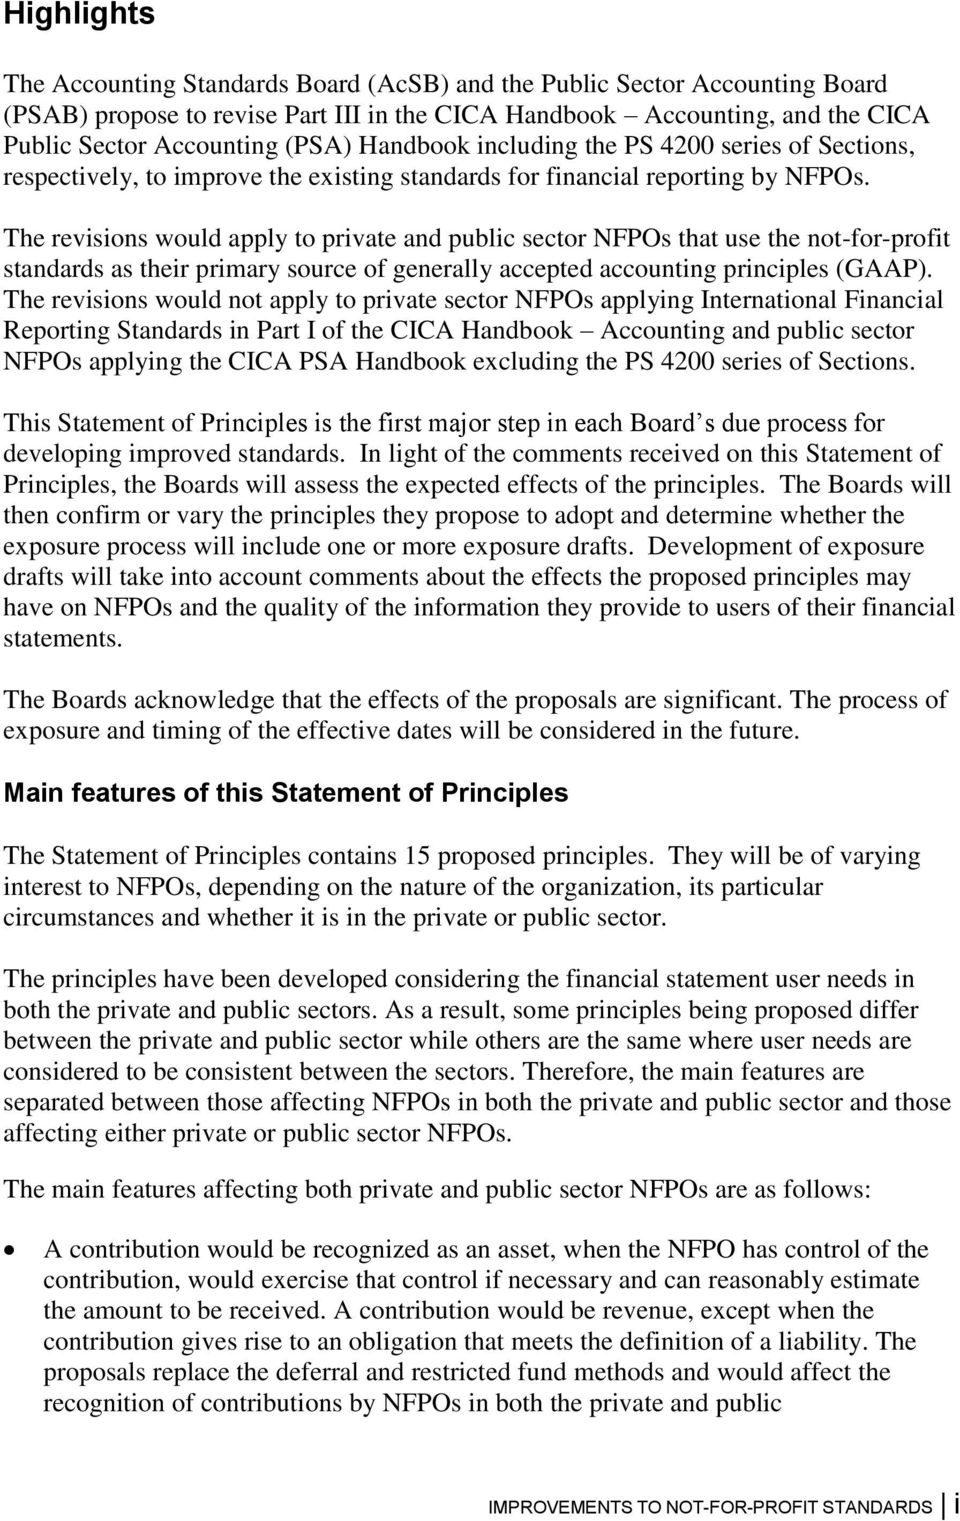 The revisions would apply to private and public sector NFPOs that use the not-for-profit standards as their primary source of generally accepted accounting principles (GAAP).